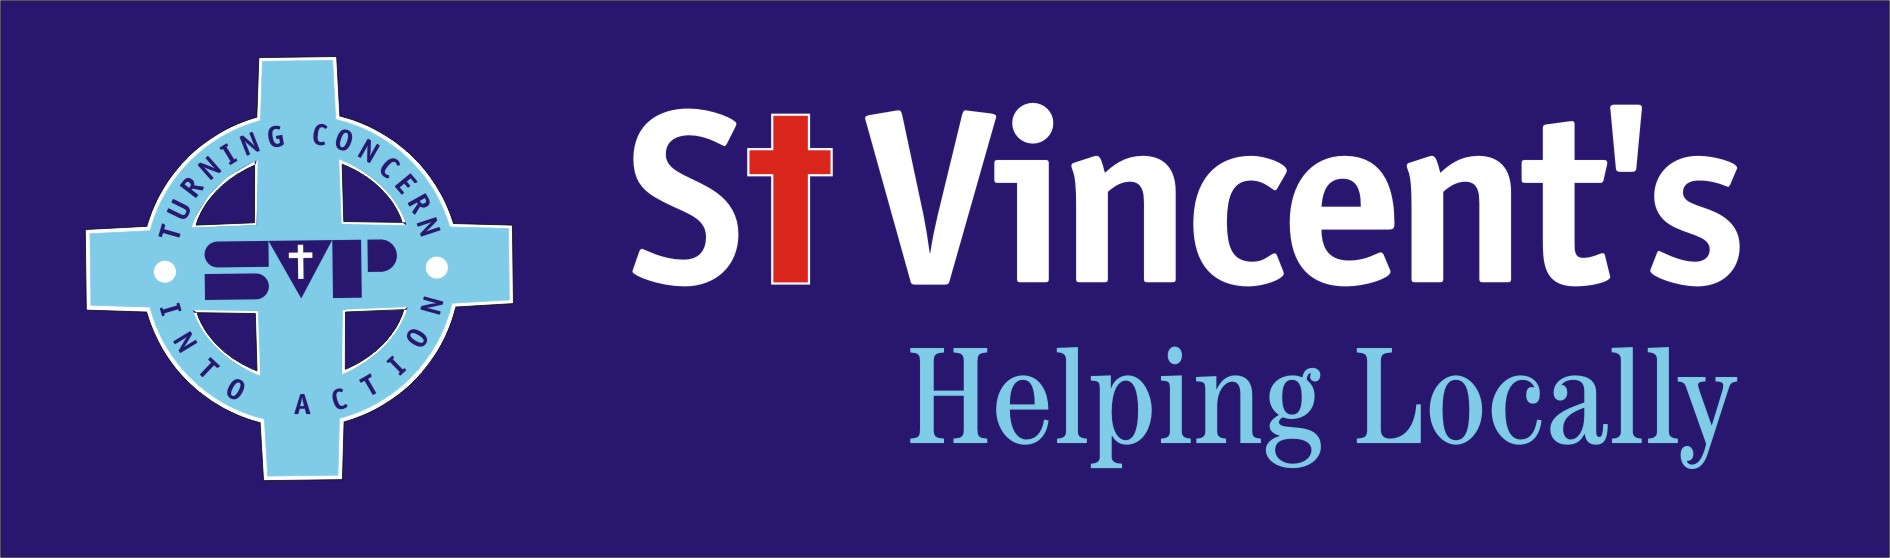 St Vincent's Helping Locally Logo